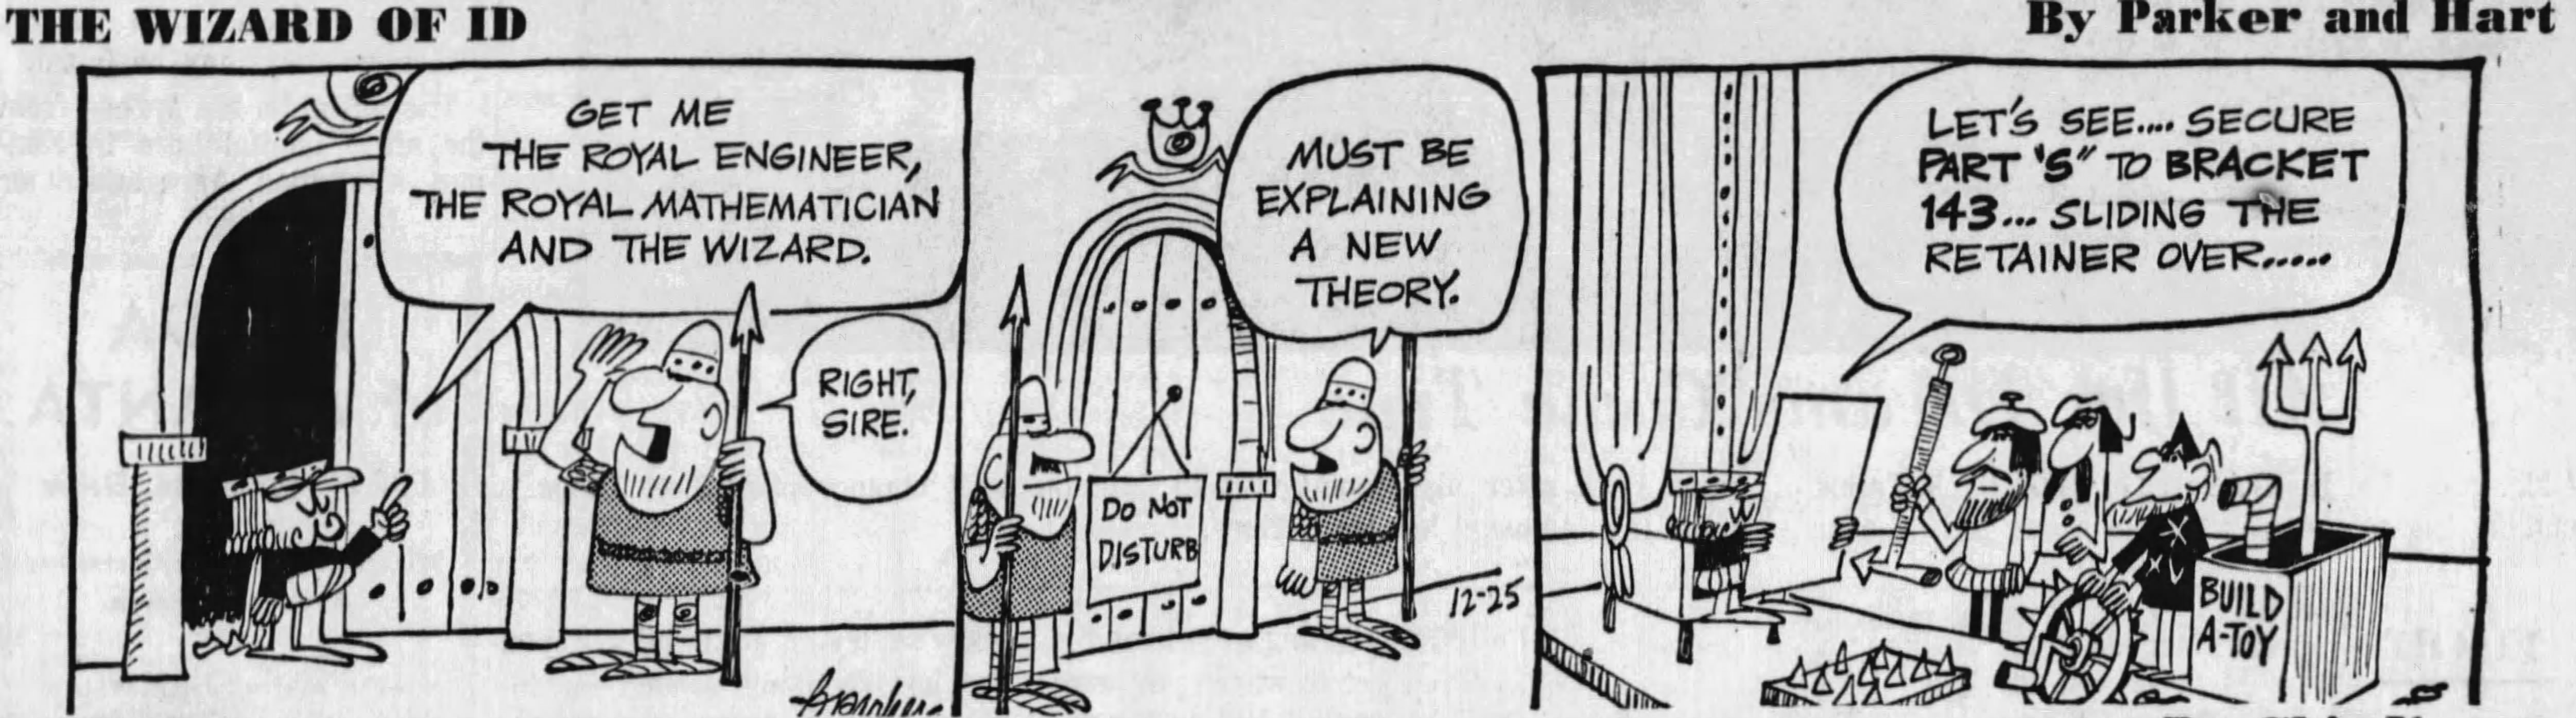 The Wizard of Id, December 25, 1967